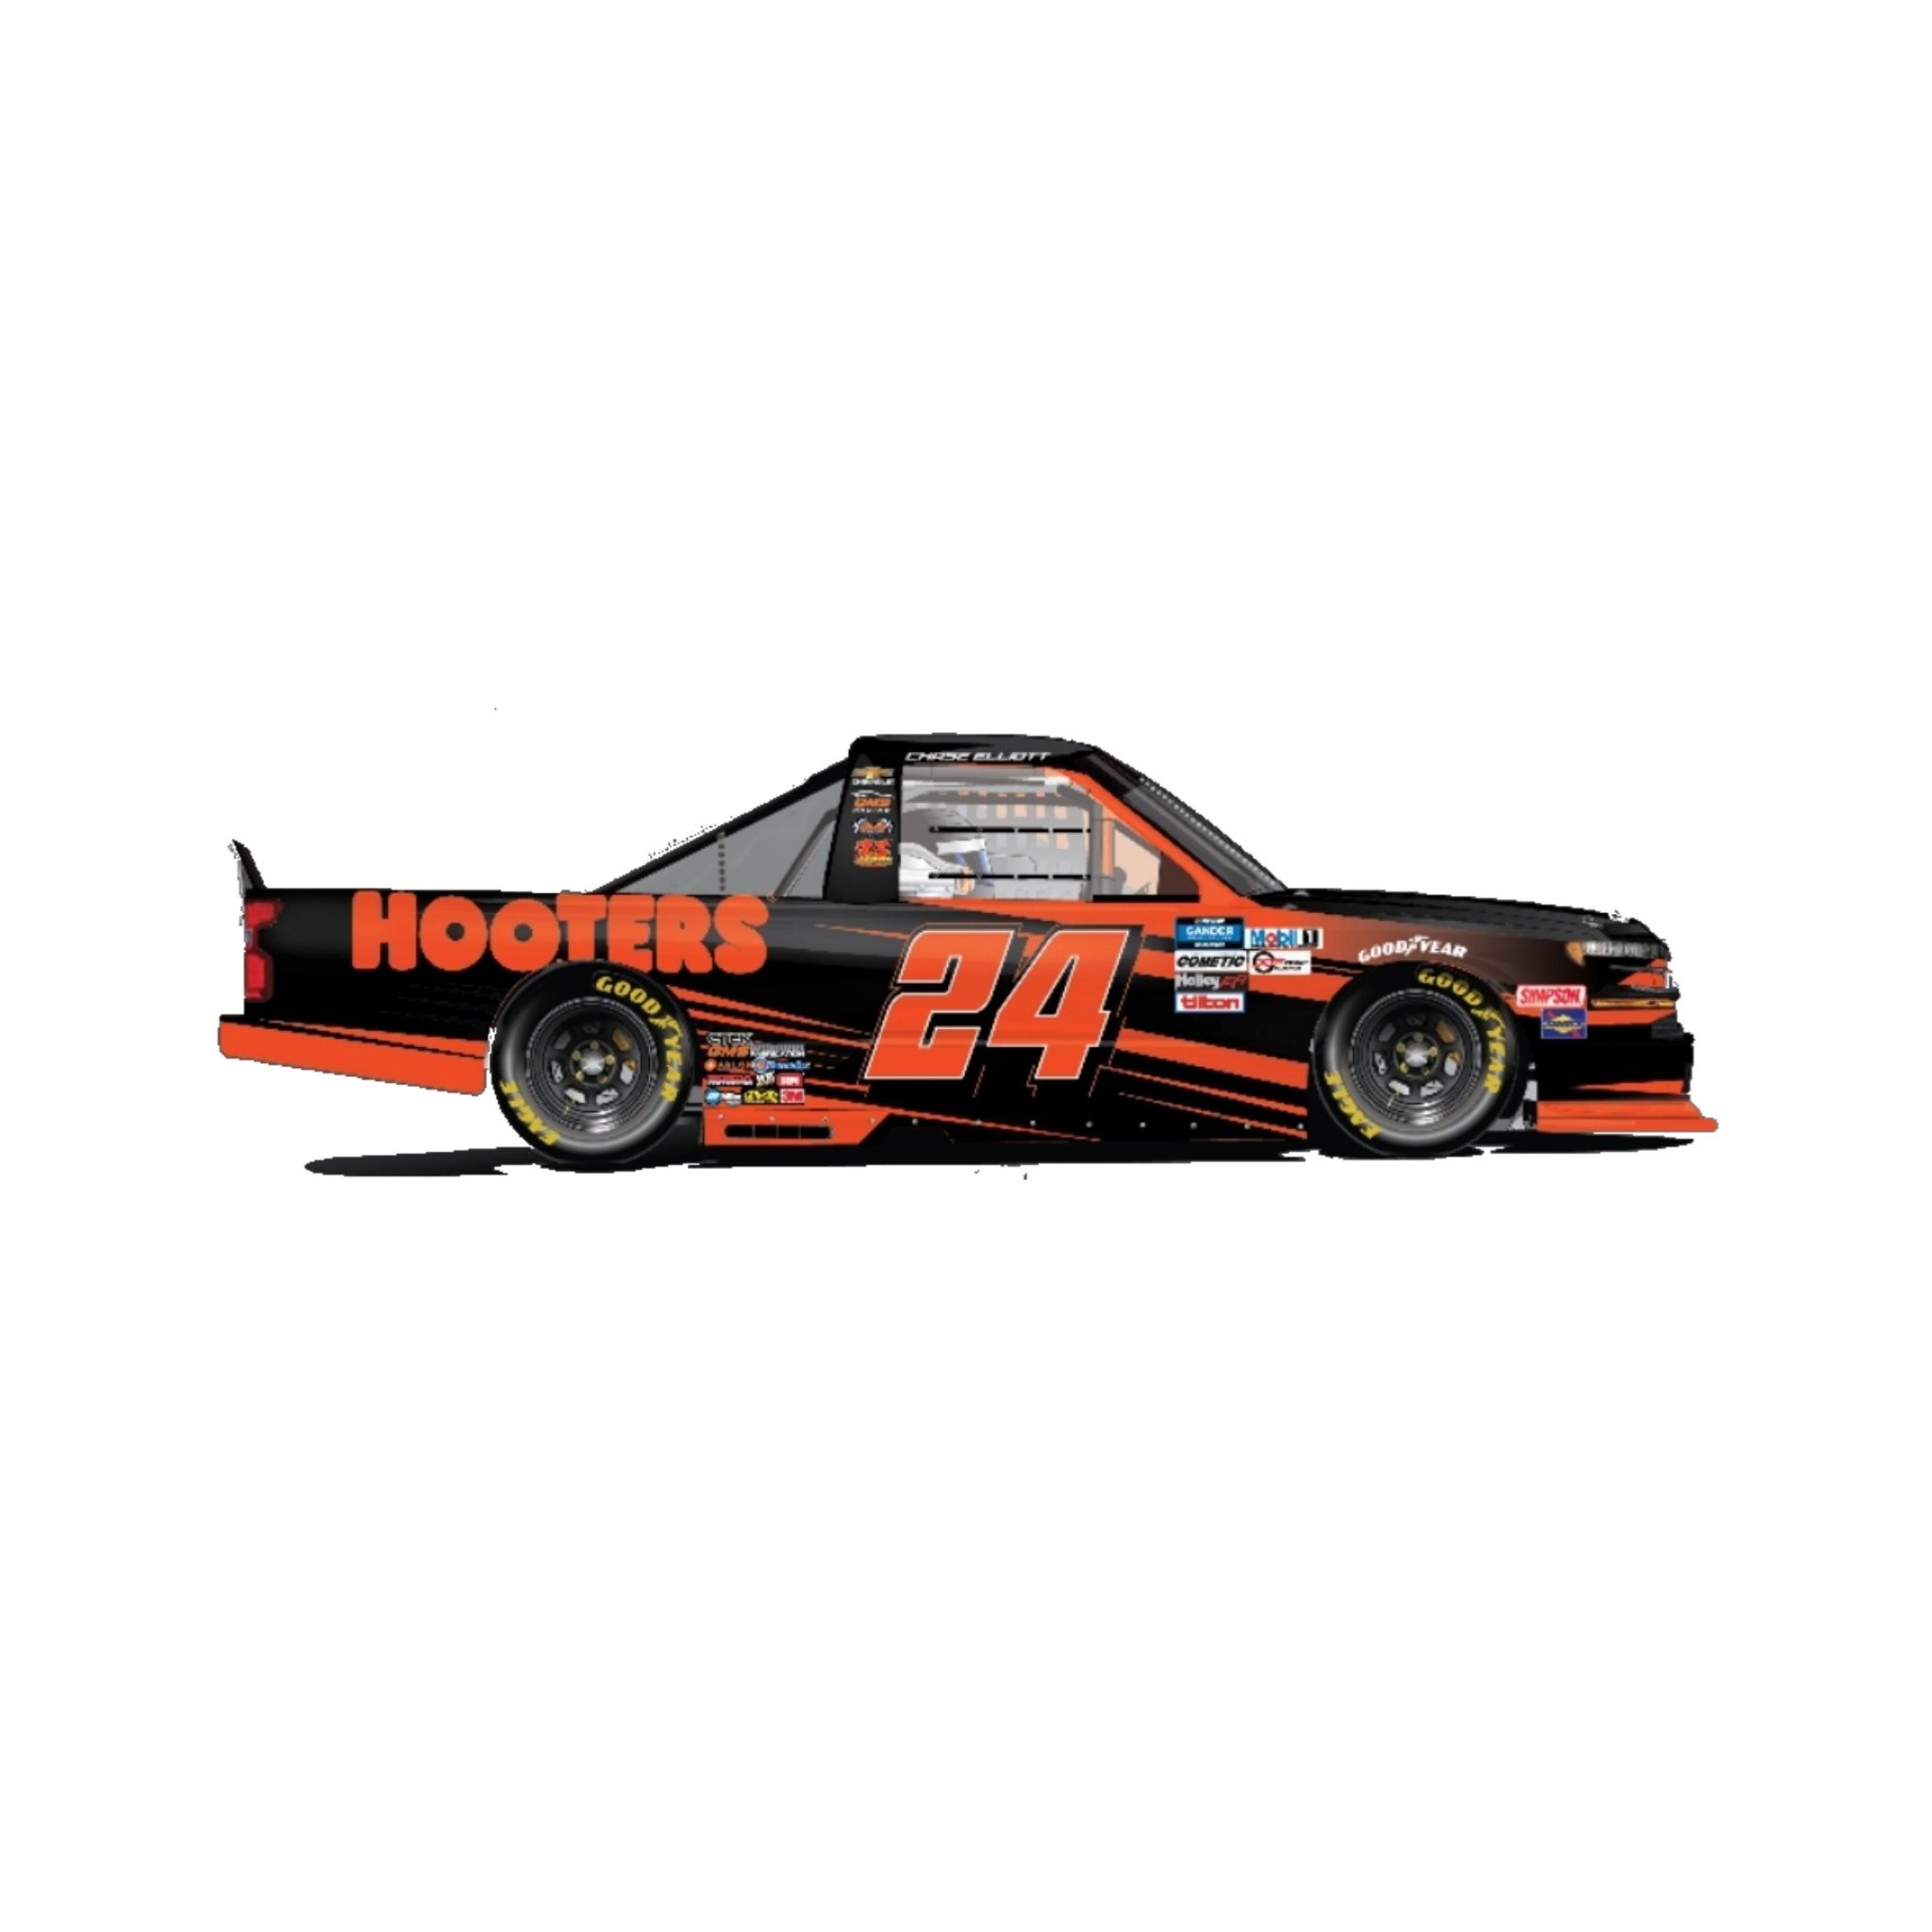 2020 Atlanta Truck Race Hooters STANDARD 1:64 Die-Cast